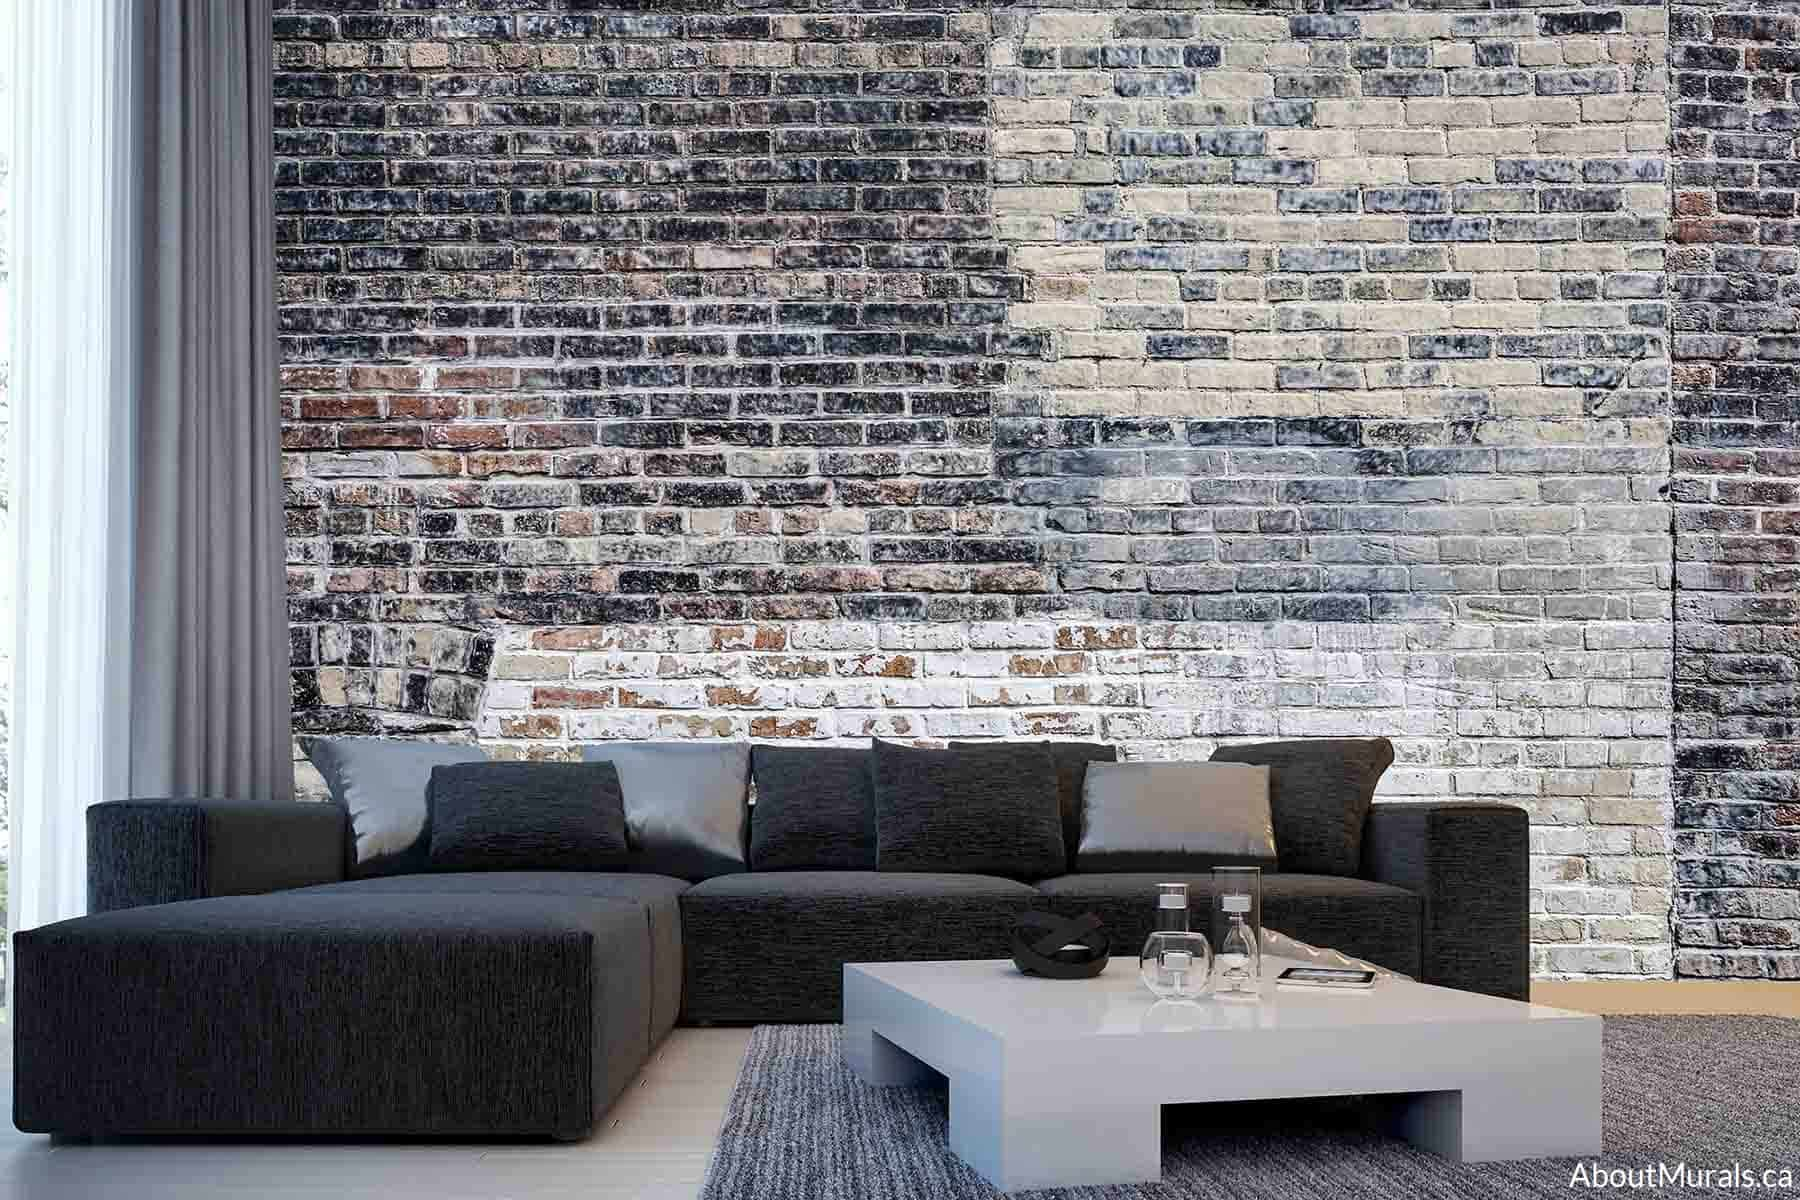 Old Multi Colored Brick Wall Mural, as seen in this living room, features black and white decaying paint on industrial feeling brick. Brick wallpaper sold by AboutMurals.ca.